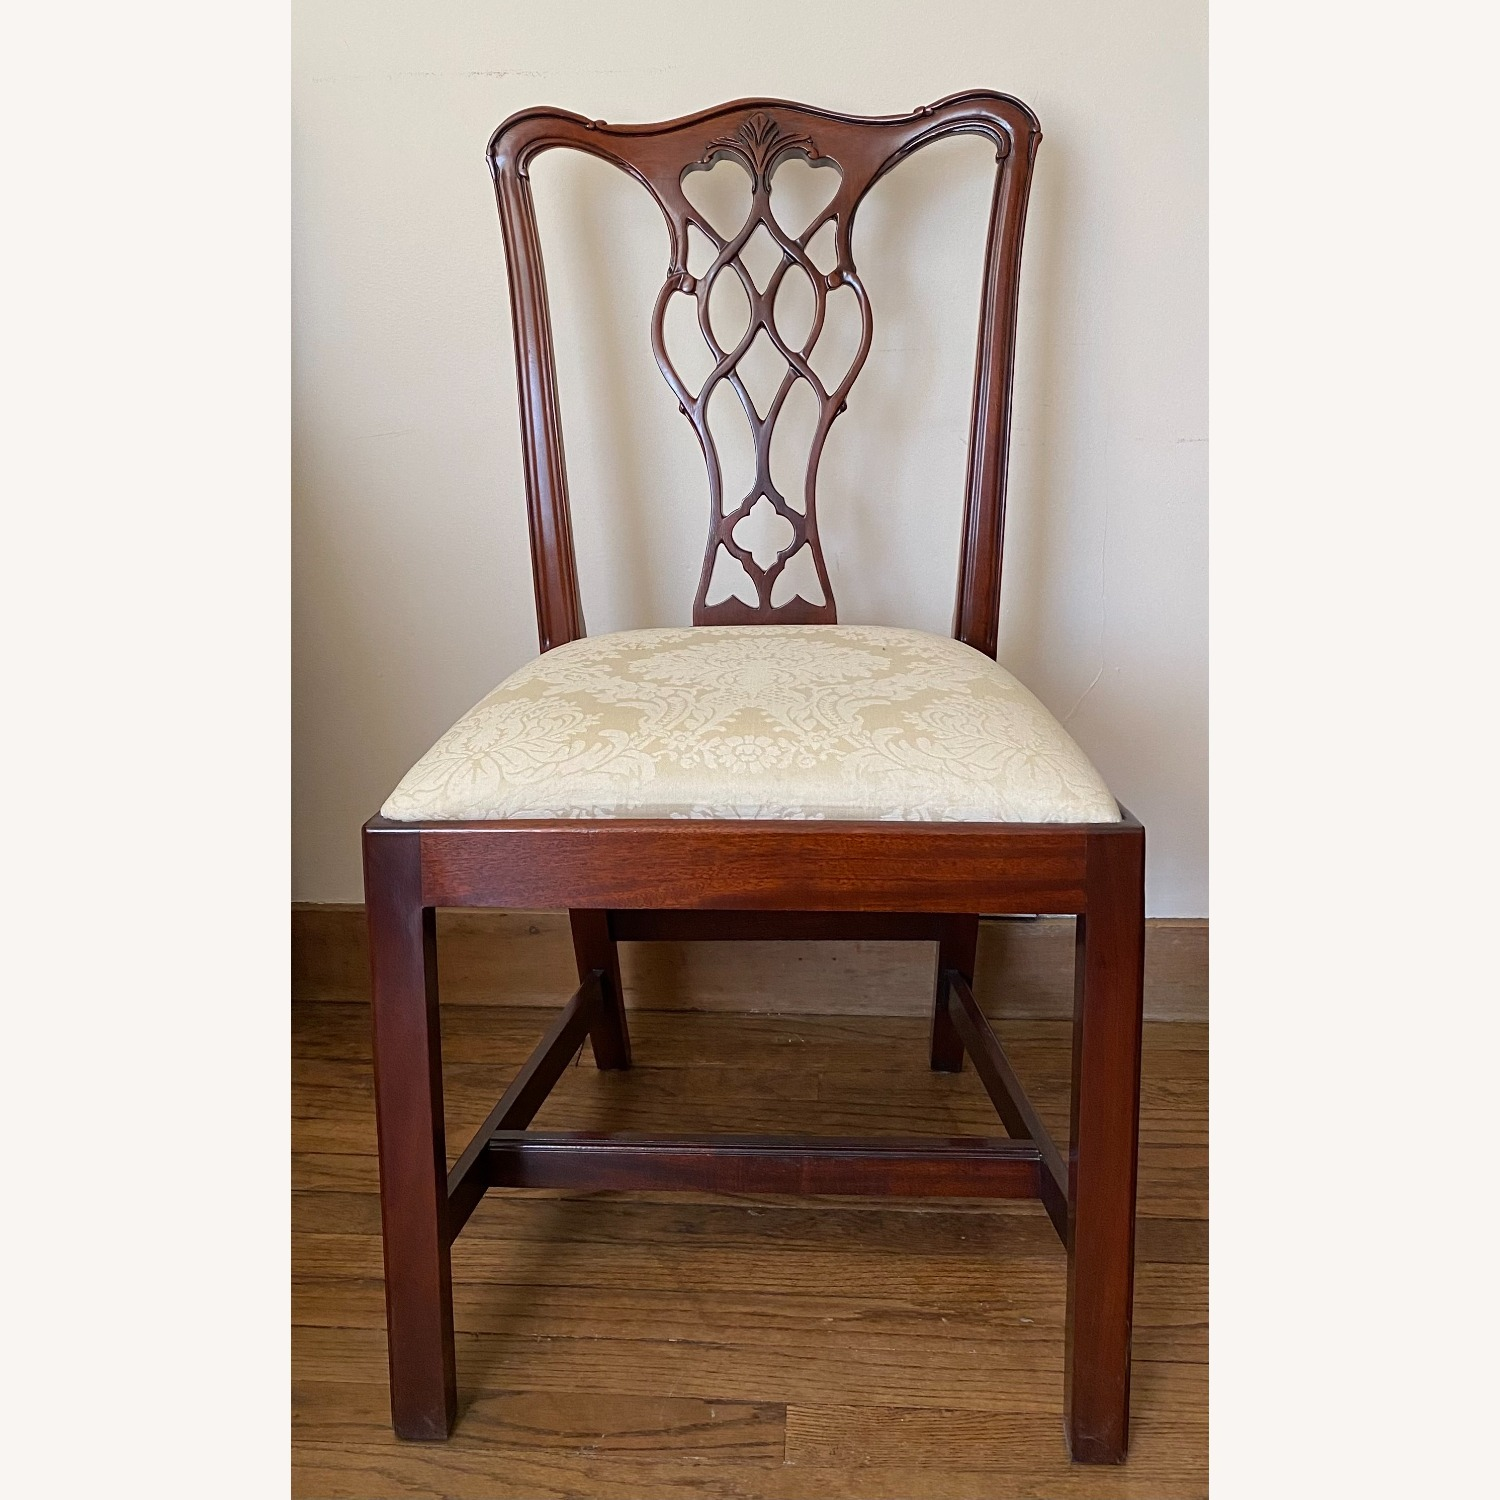 4 Councill Mahogany Chippendale Dining Chairs - image-1